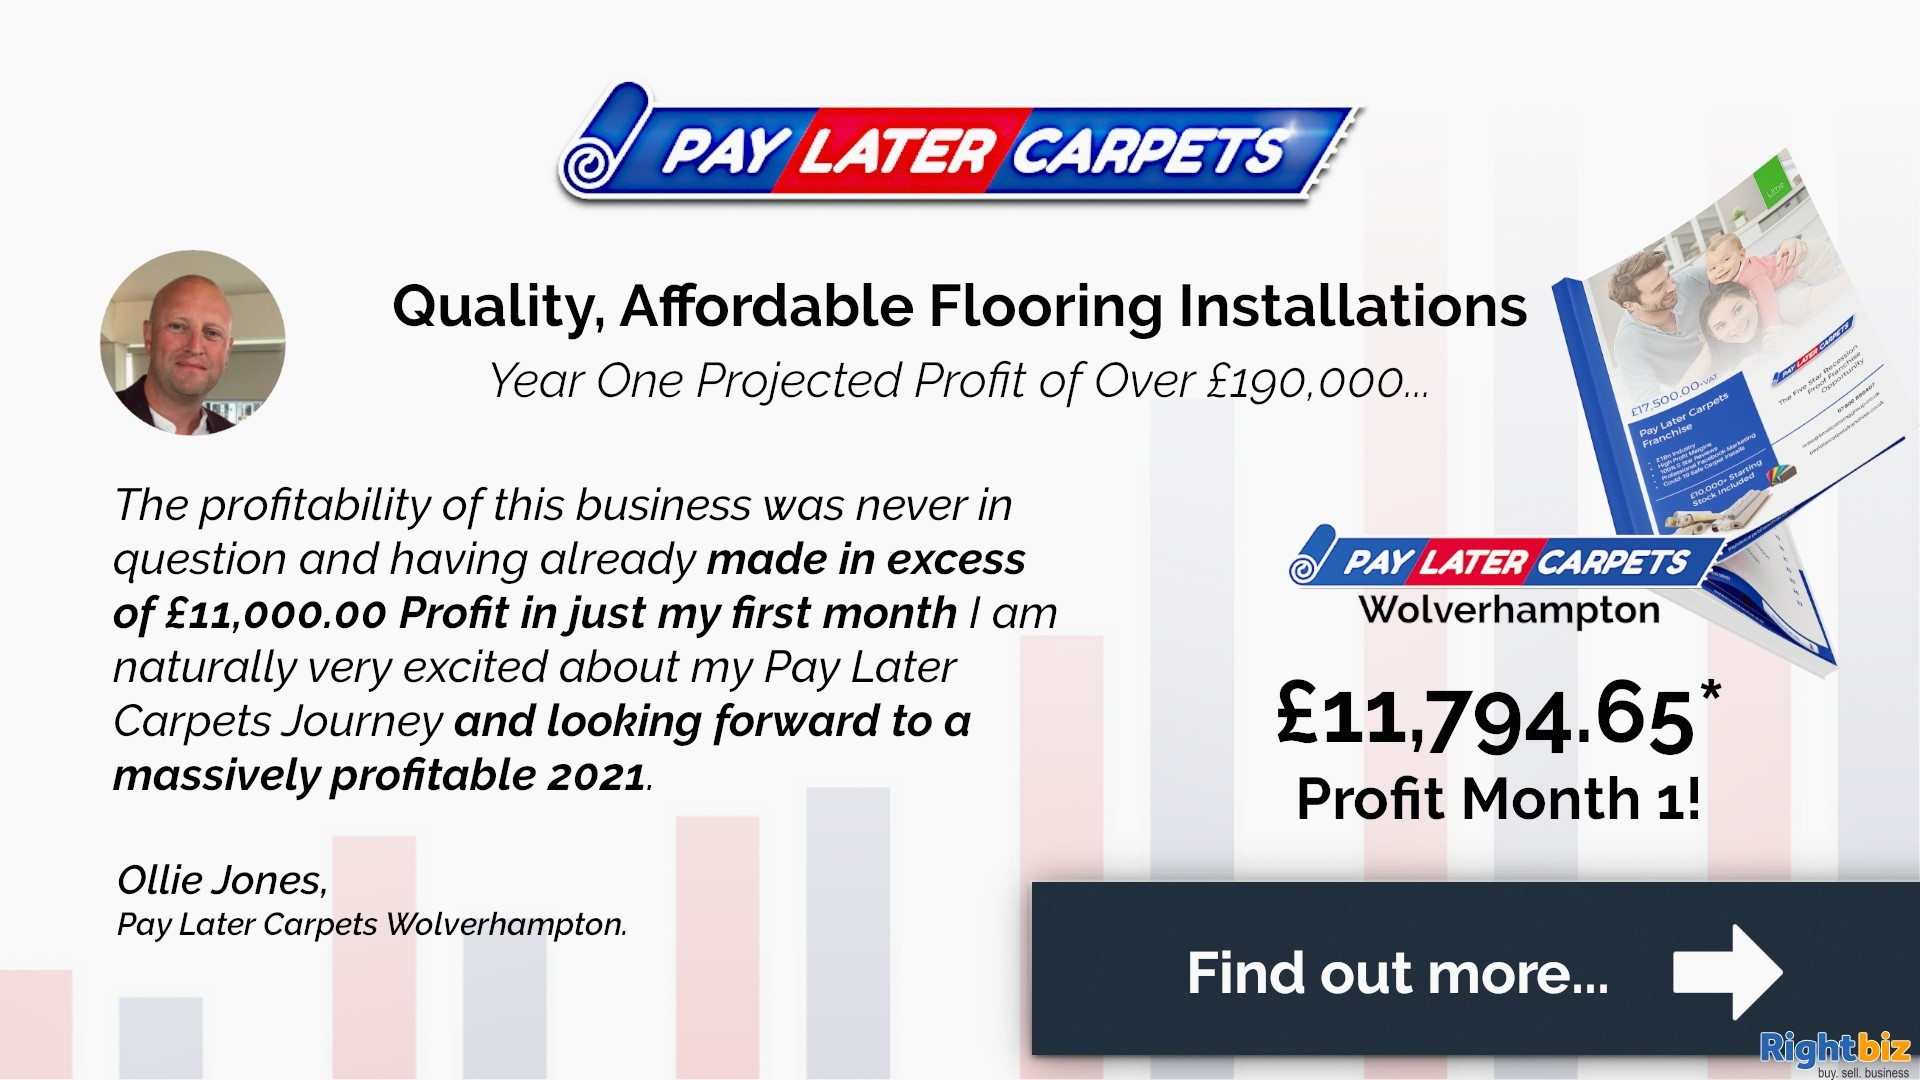 Pay Later Carpets Franchise St Asaph Our First Franchisee Made £11,000+ Profit in Month One - Image 1